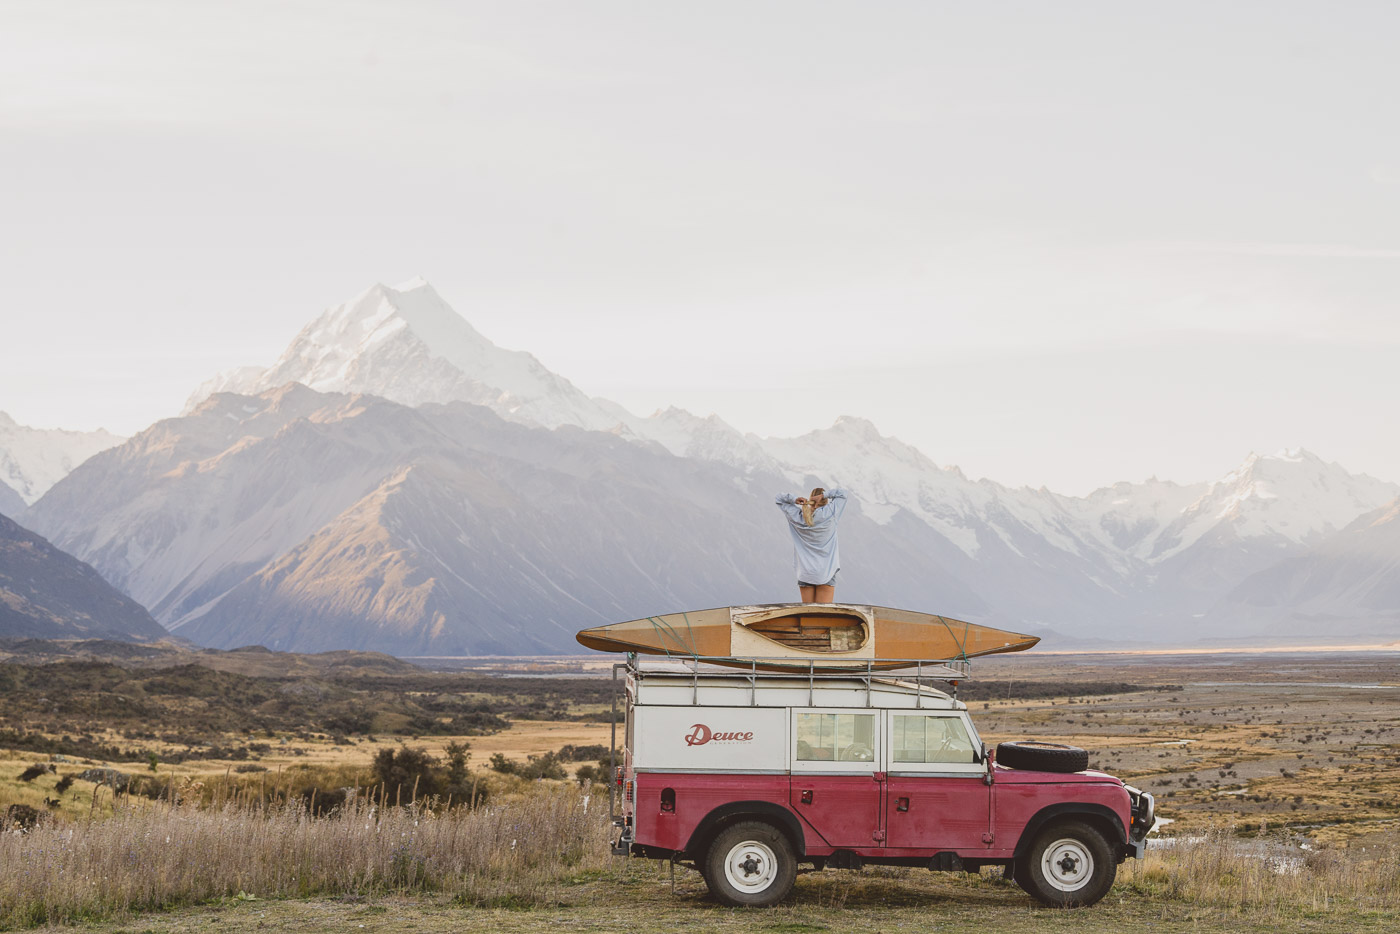 DeuceRover with Kayak on the roof enjoying the scenics of Mount Cook.